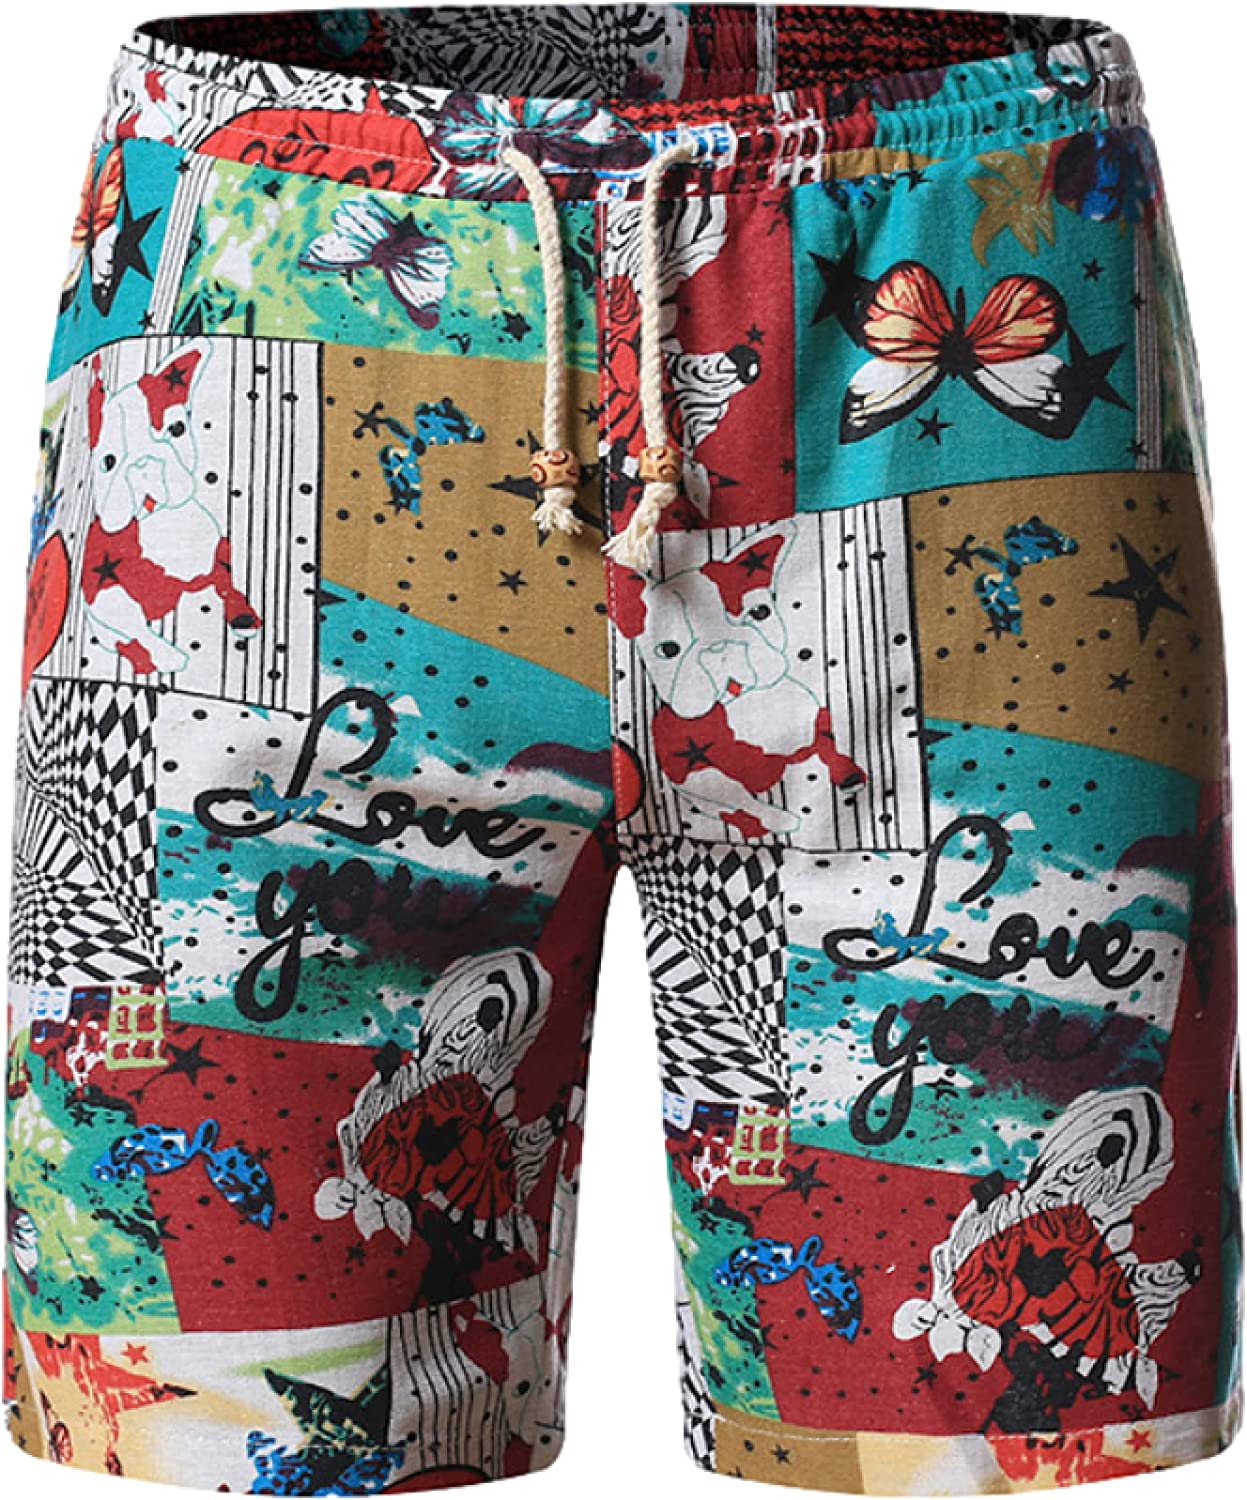 Wantess Men's Loose Fit Shorts Summer Fashion Trend Personality Printing Casual